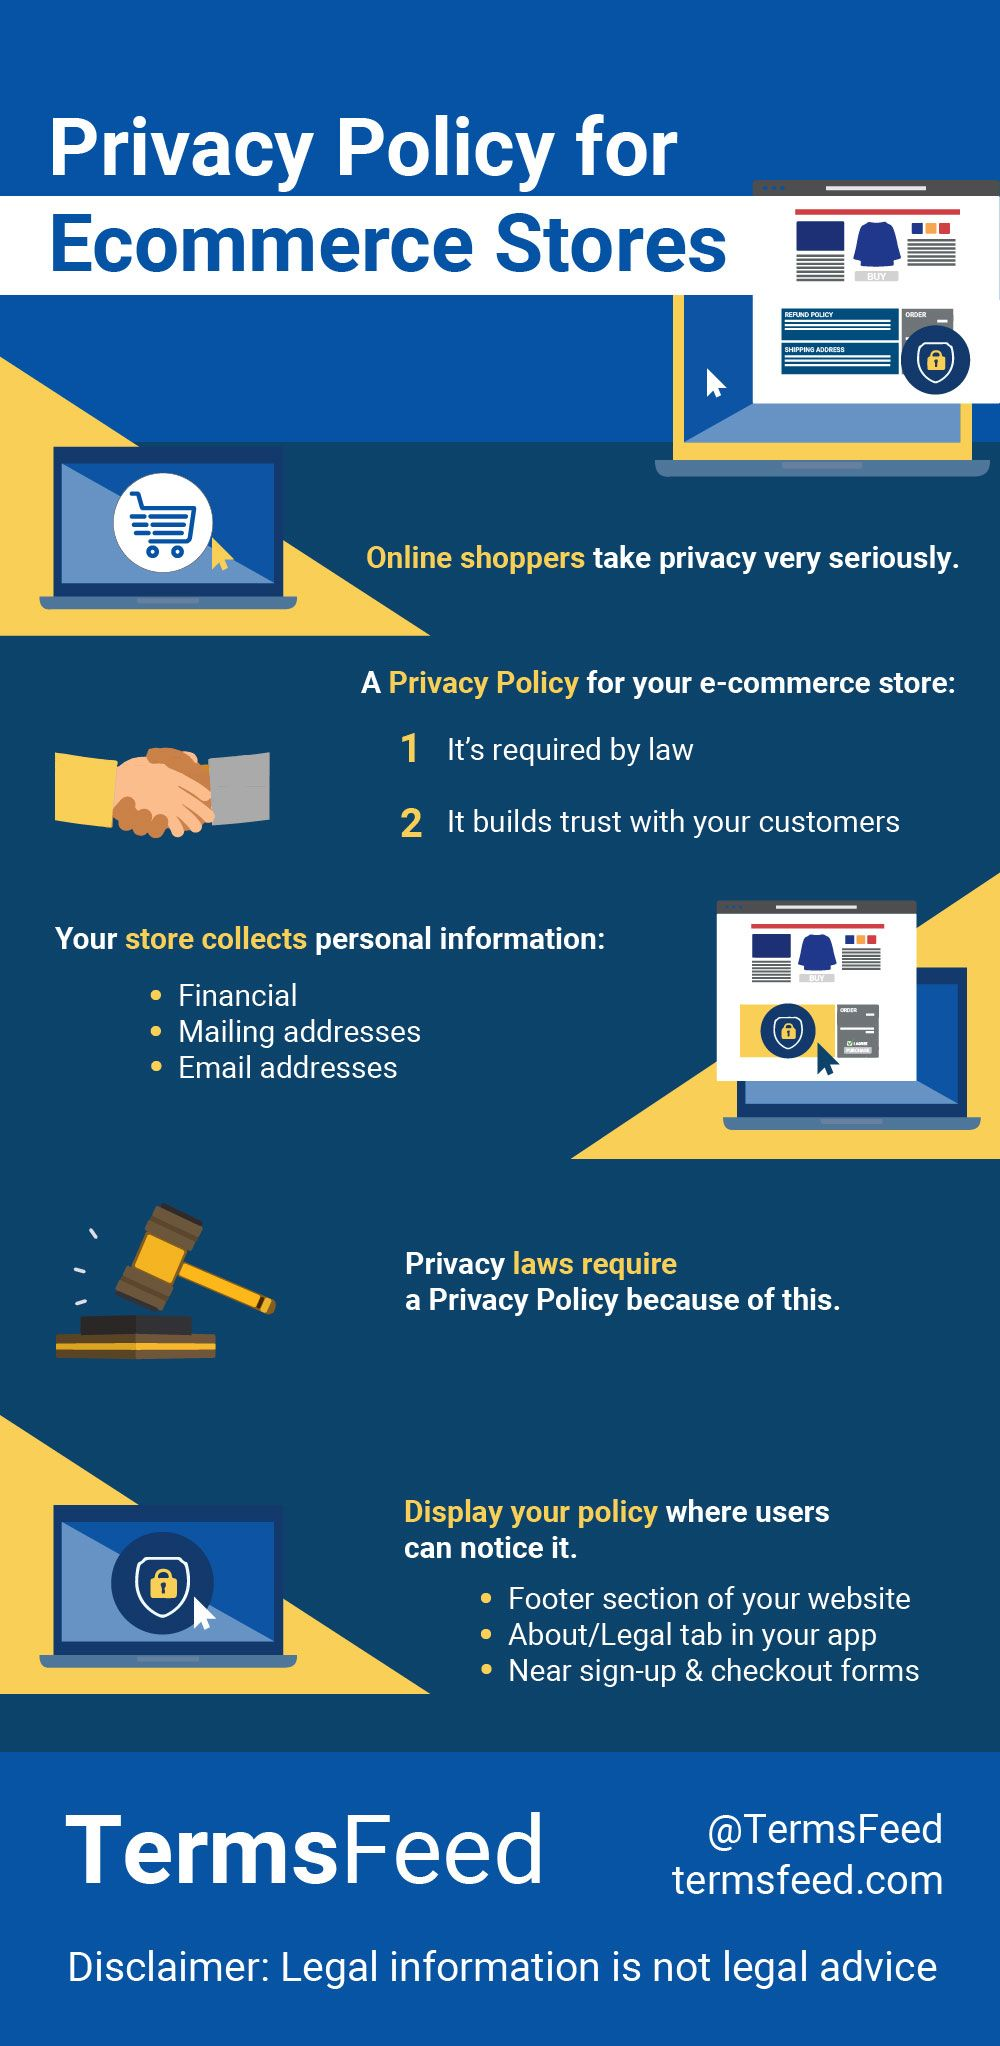 Privacy Policy For Ecommerce Stores Termsfeed Ecommerce Privacy Policy Policies